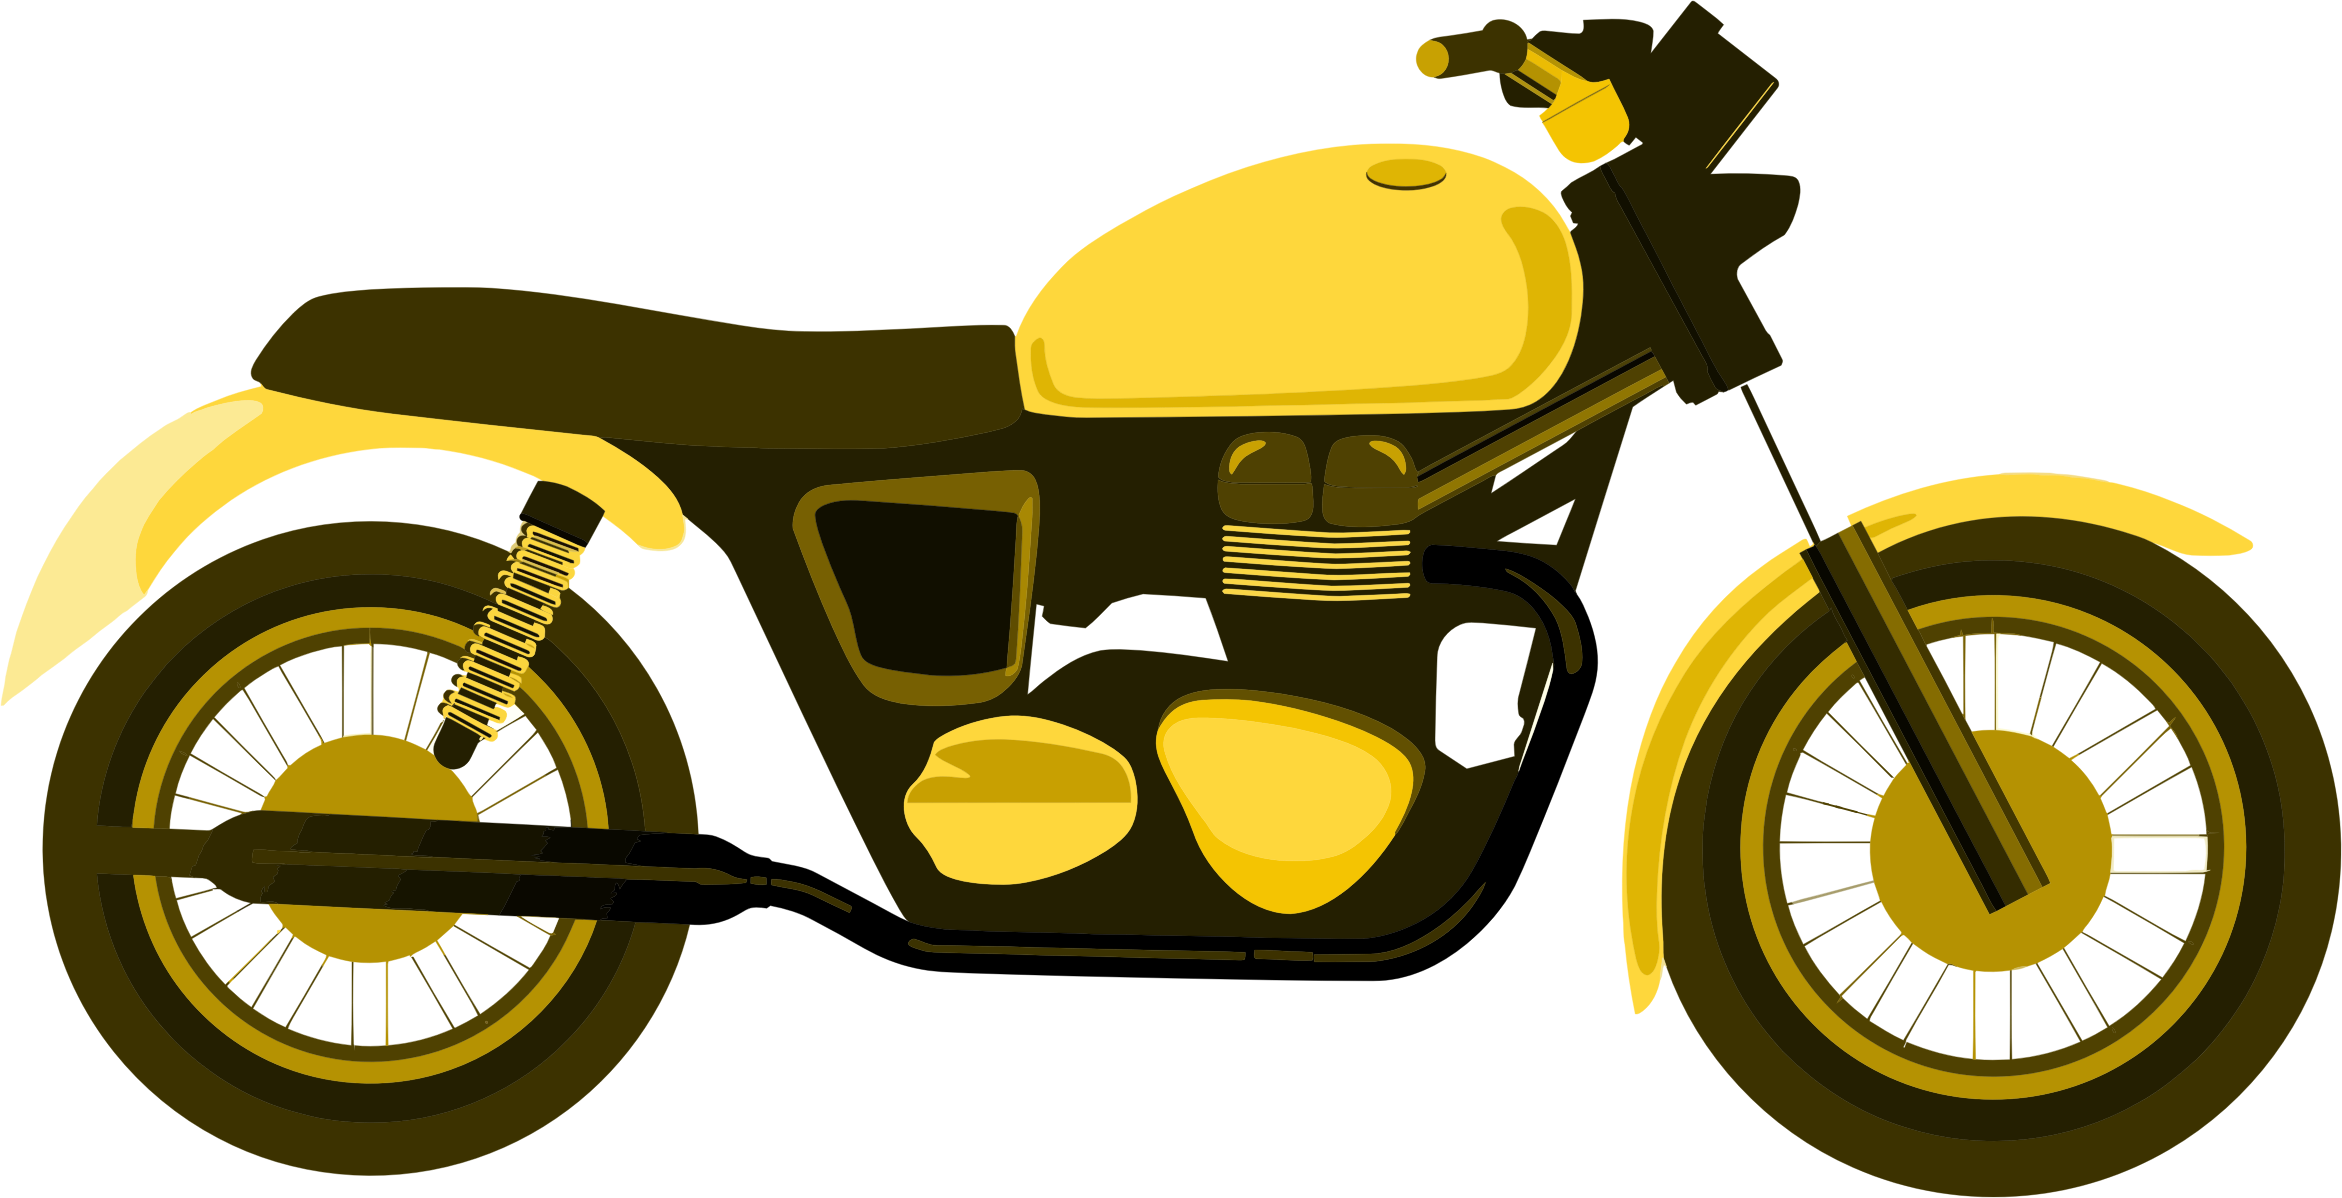 Yellow clipart motorbike Yellow Yellow Clipart Motorcycle Motorcycle